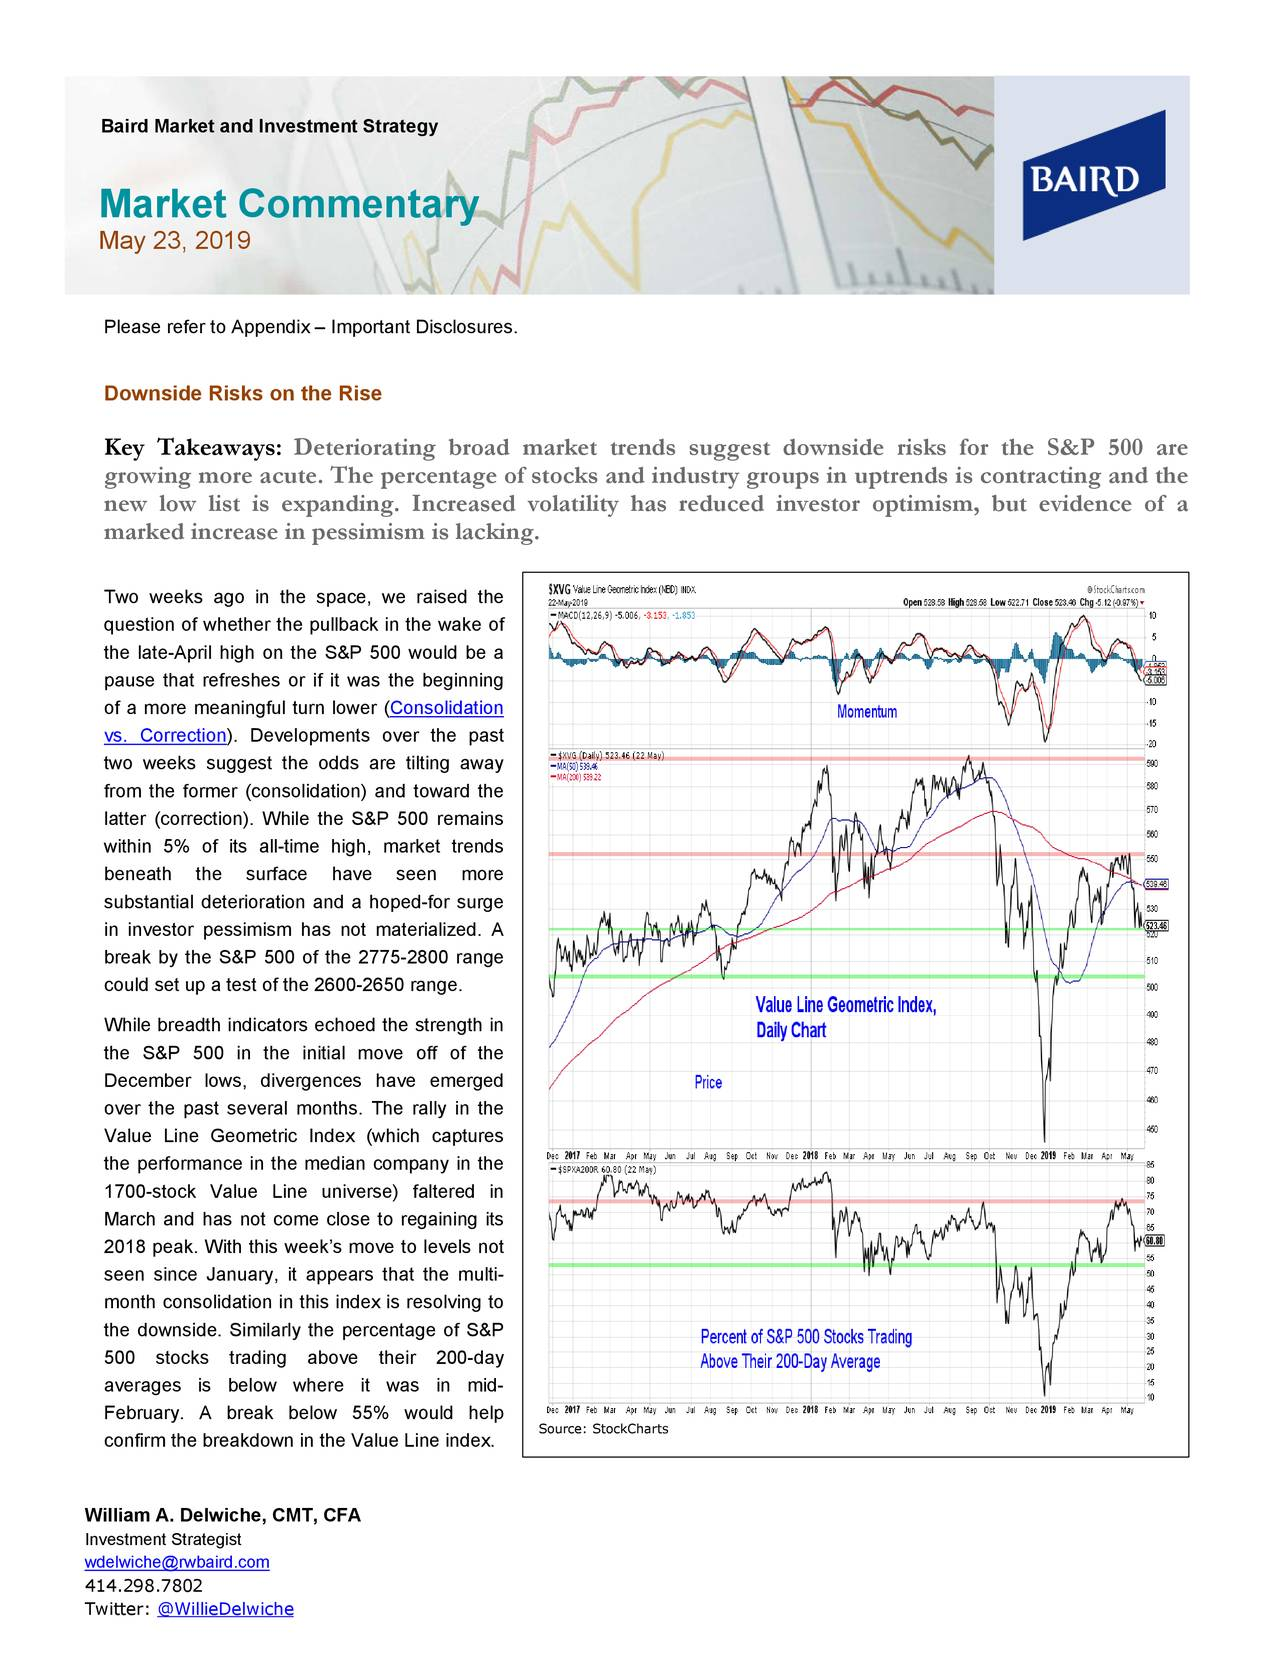 Market Commentary - May 23, 2019